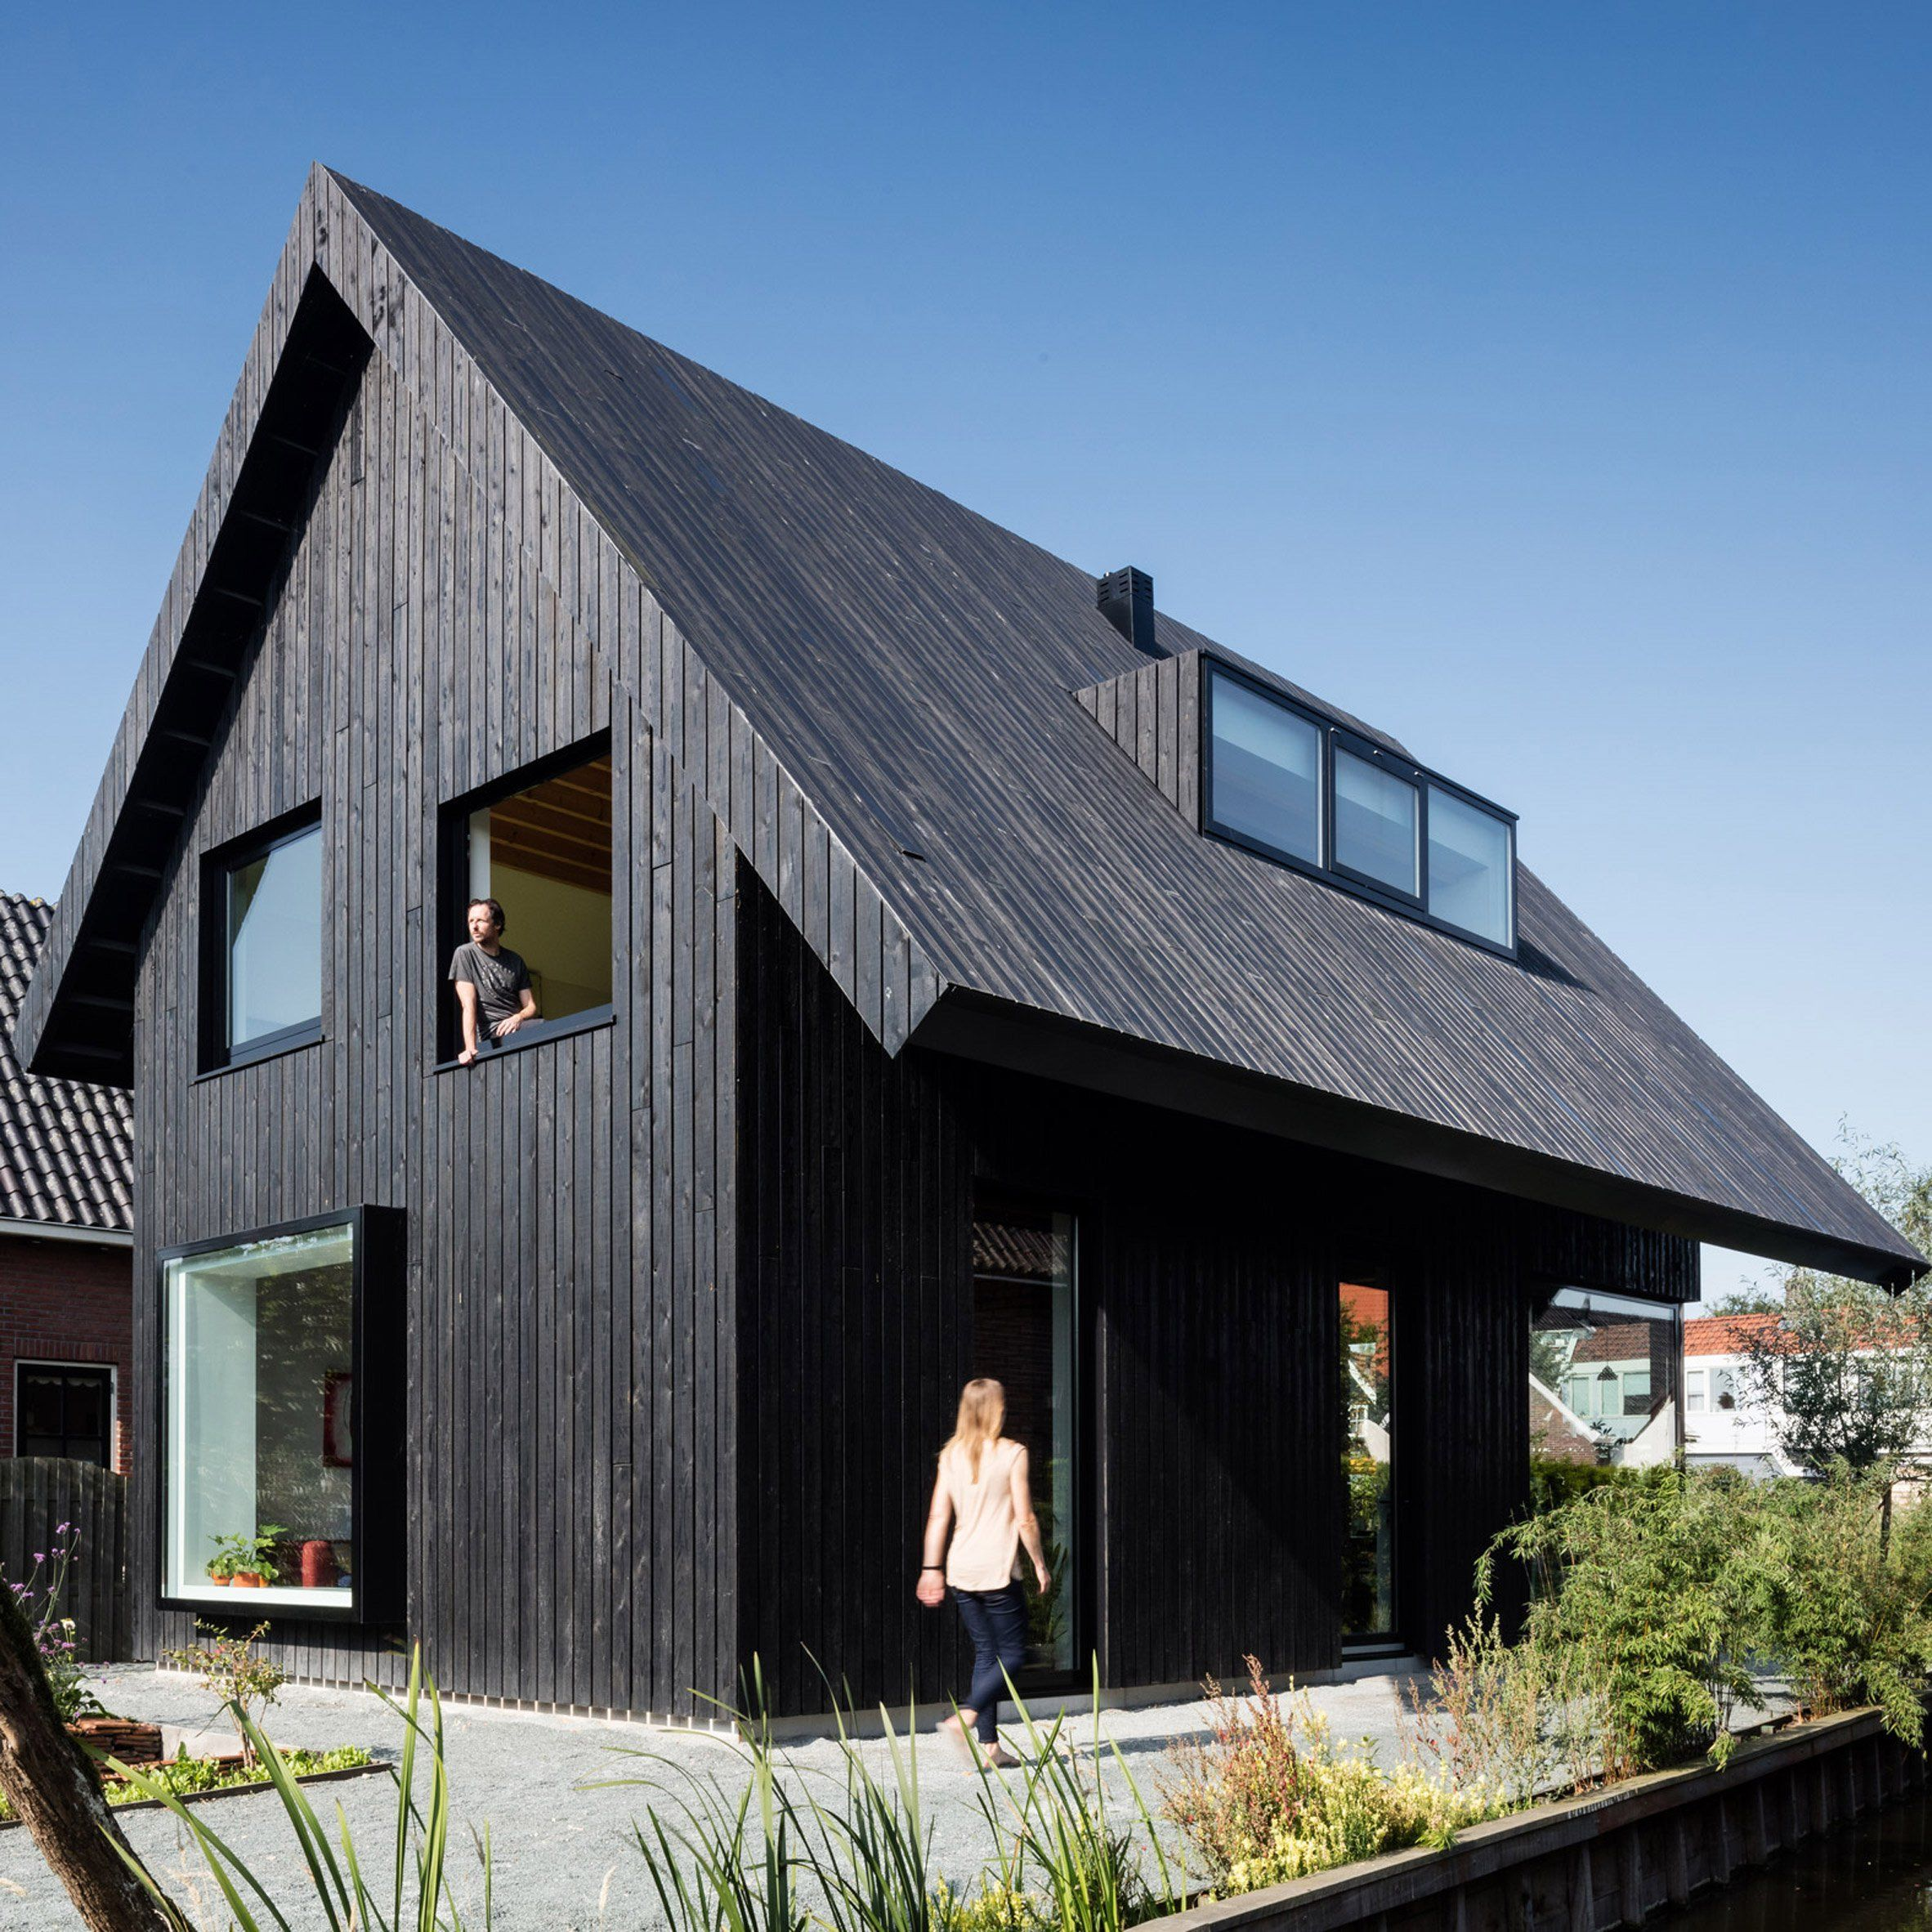 This Modern House With A Gable Roof And Round Windows On The